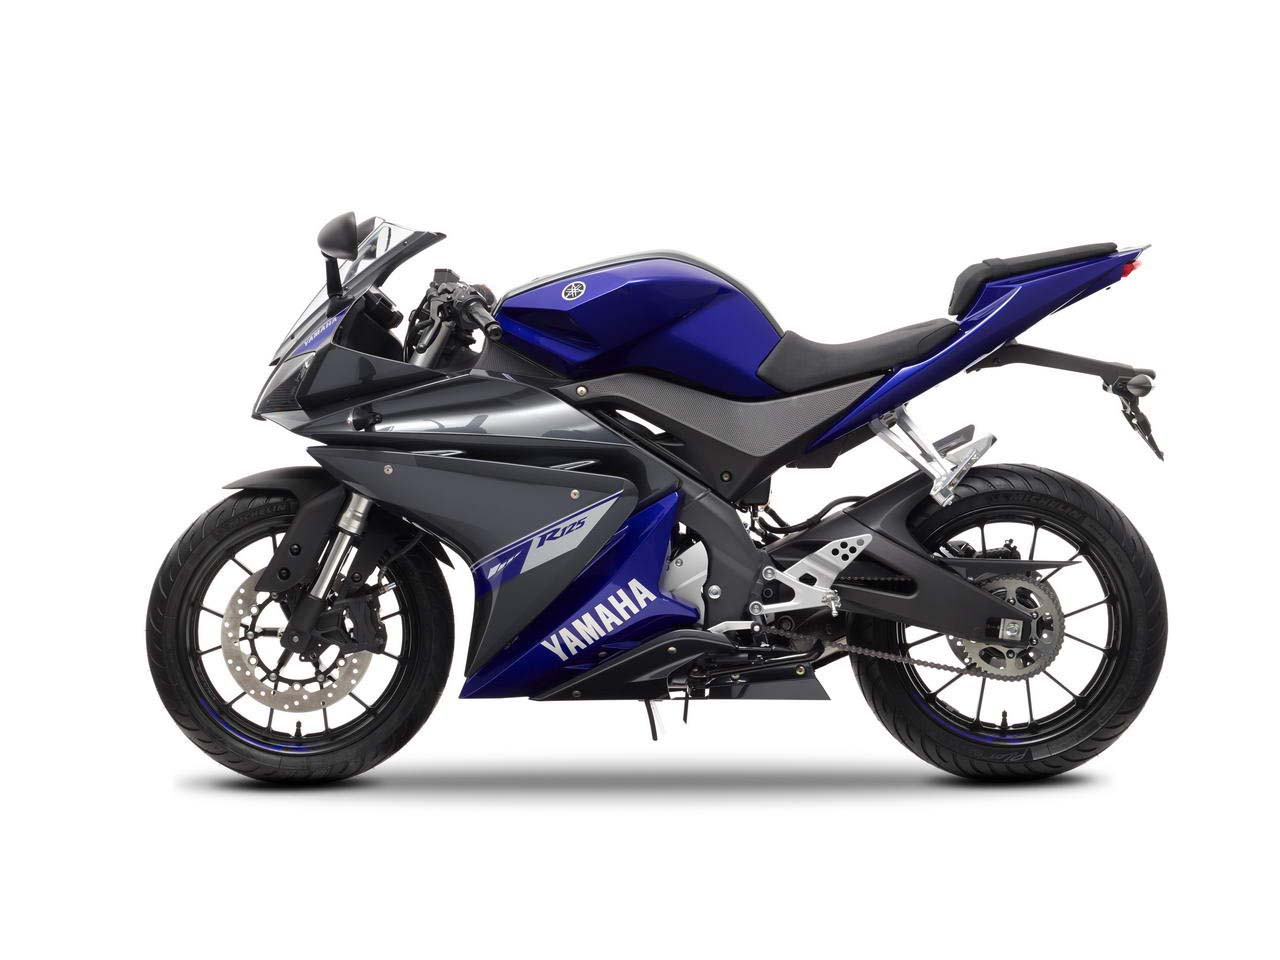 2014 yamaha yzf r125 debuts for europe asphalt rubber. Black Bedroom Furniture Sets. Home Design Ideas